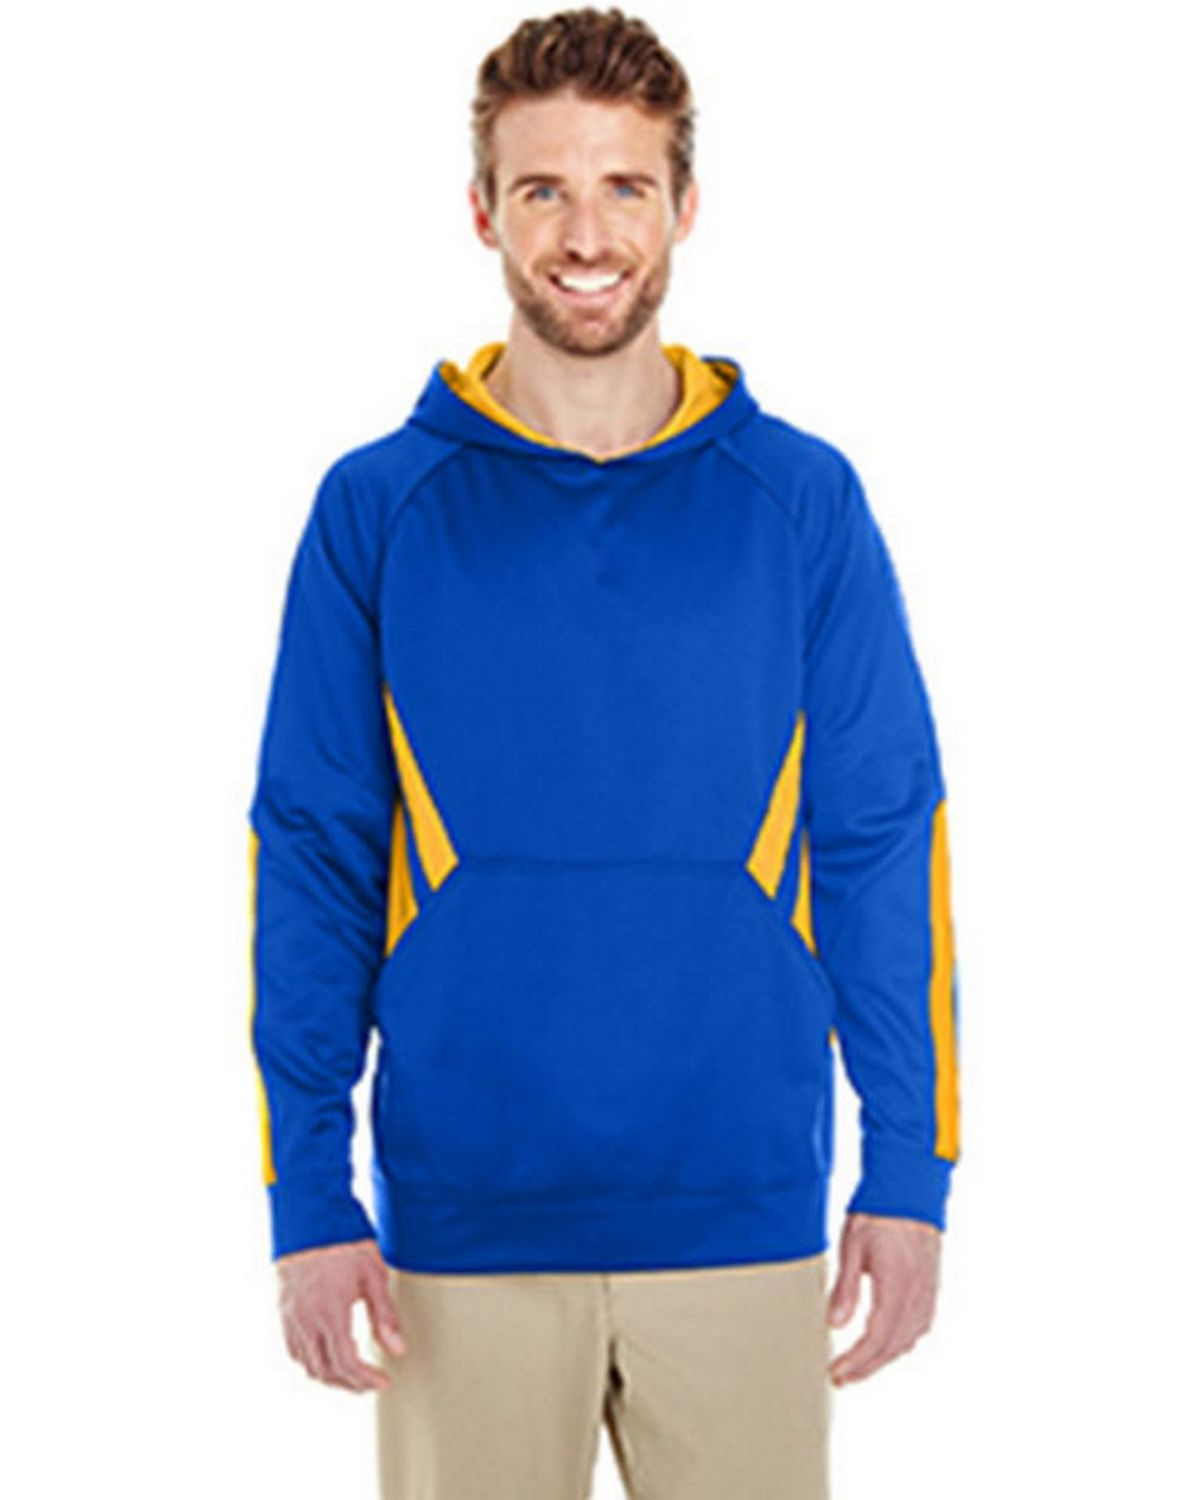 Holloway 222533 Argon Hoodie - Royal/Light Gold - XL 222533